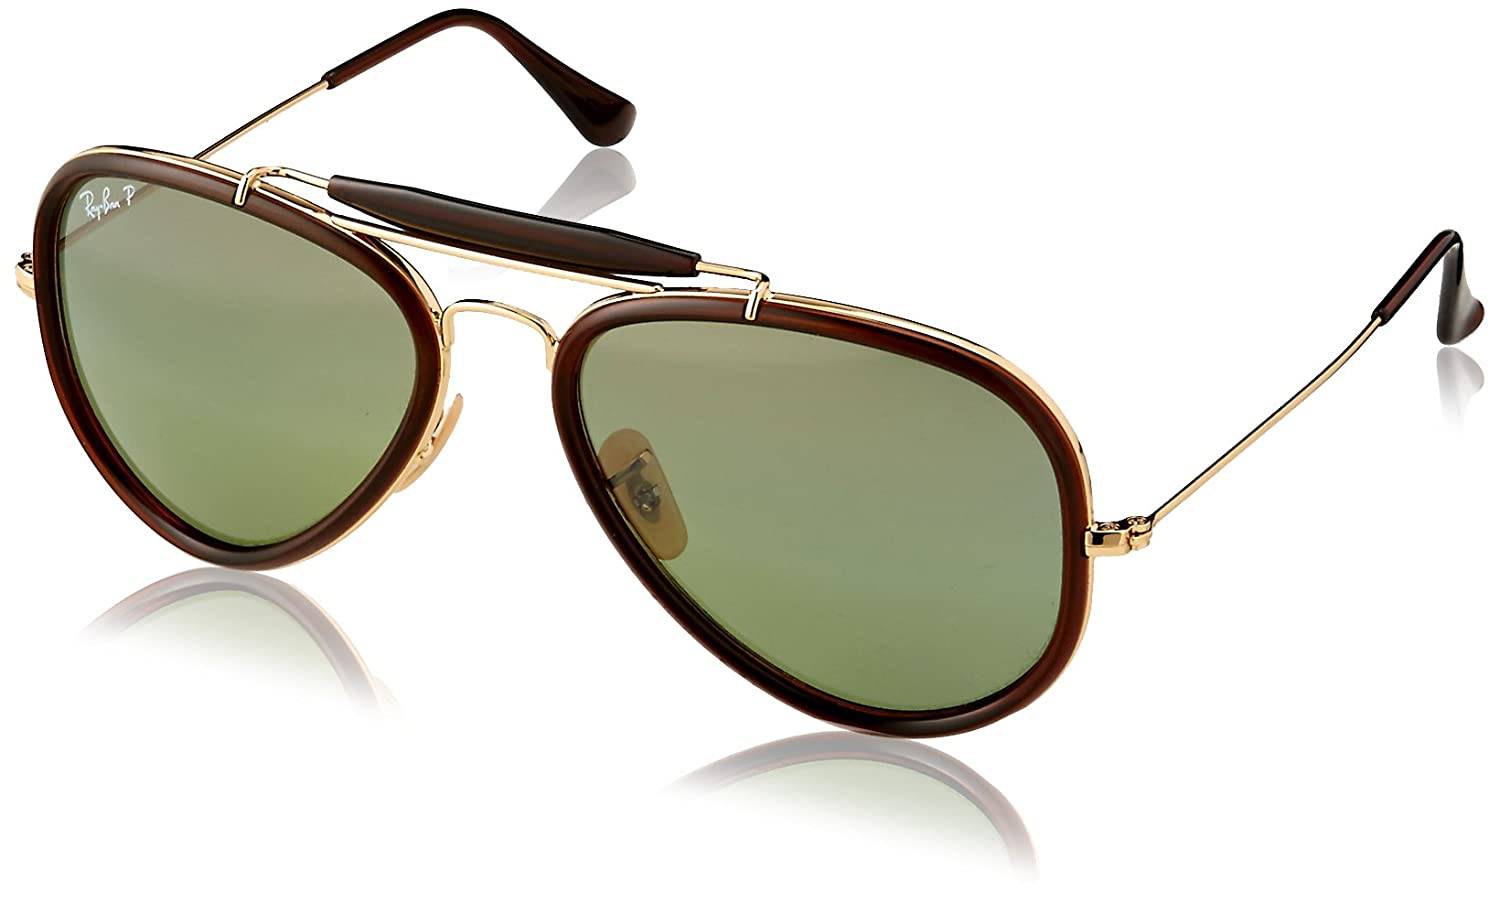 220ab2f2fdce1 Amazon.com  Ray-Ban Sunglasses ROAD SPIRIT (RB 3428 001 M4 54)  Shoes